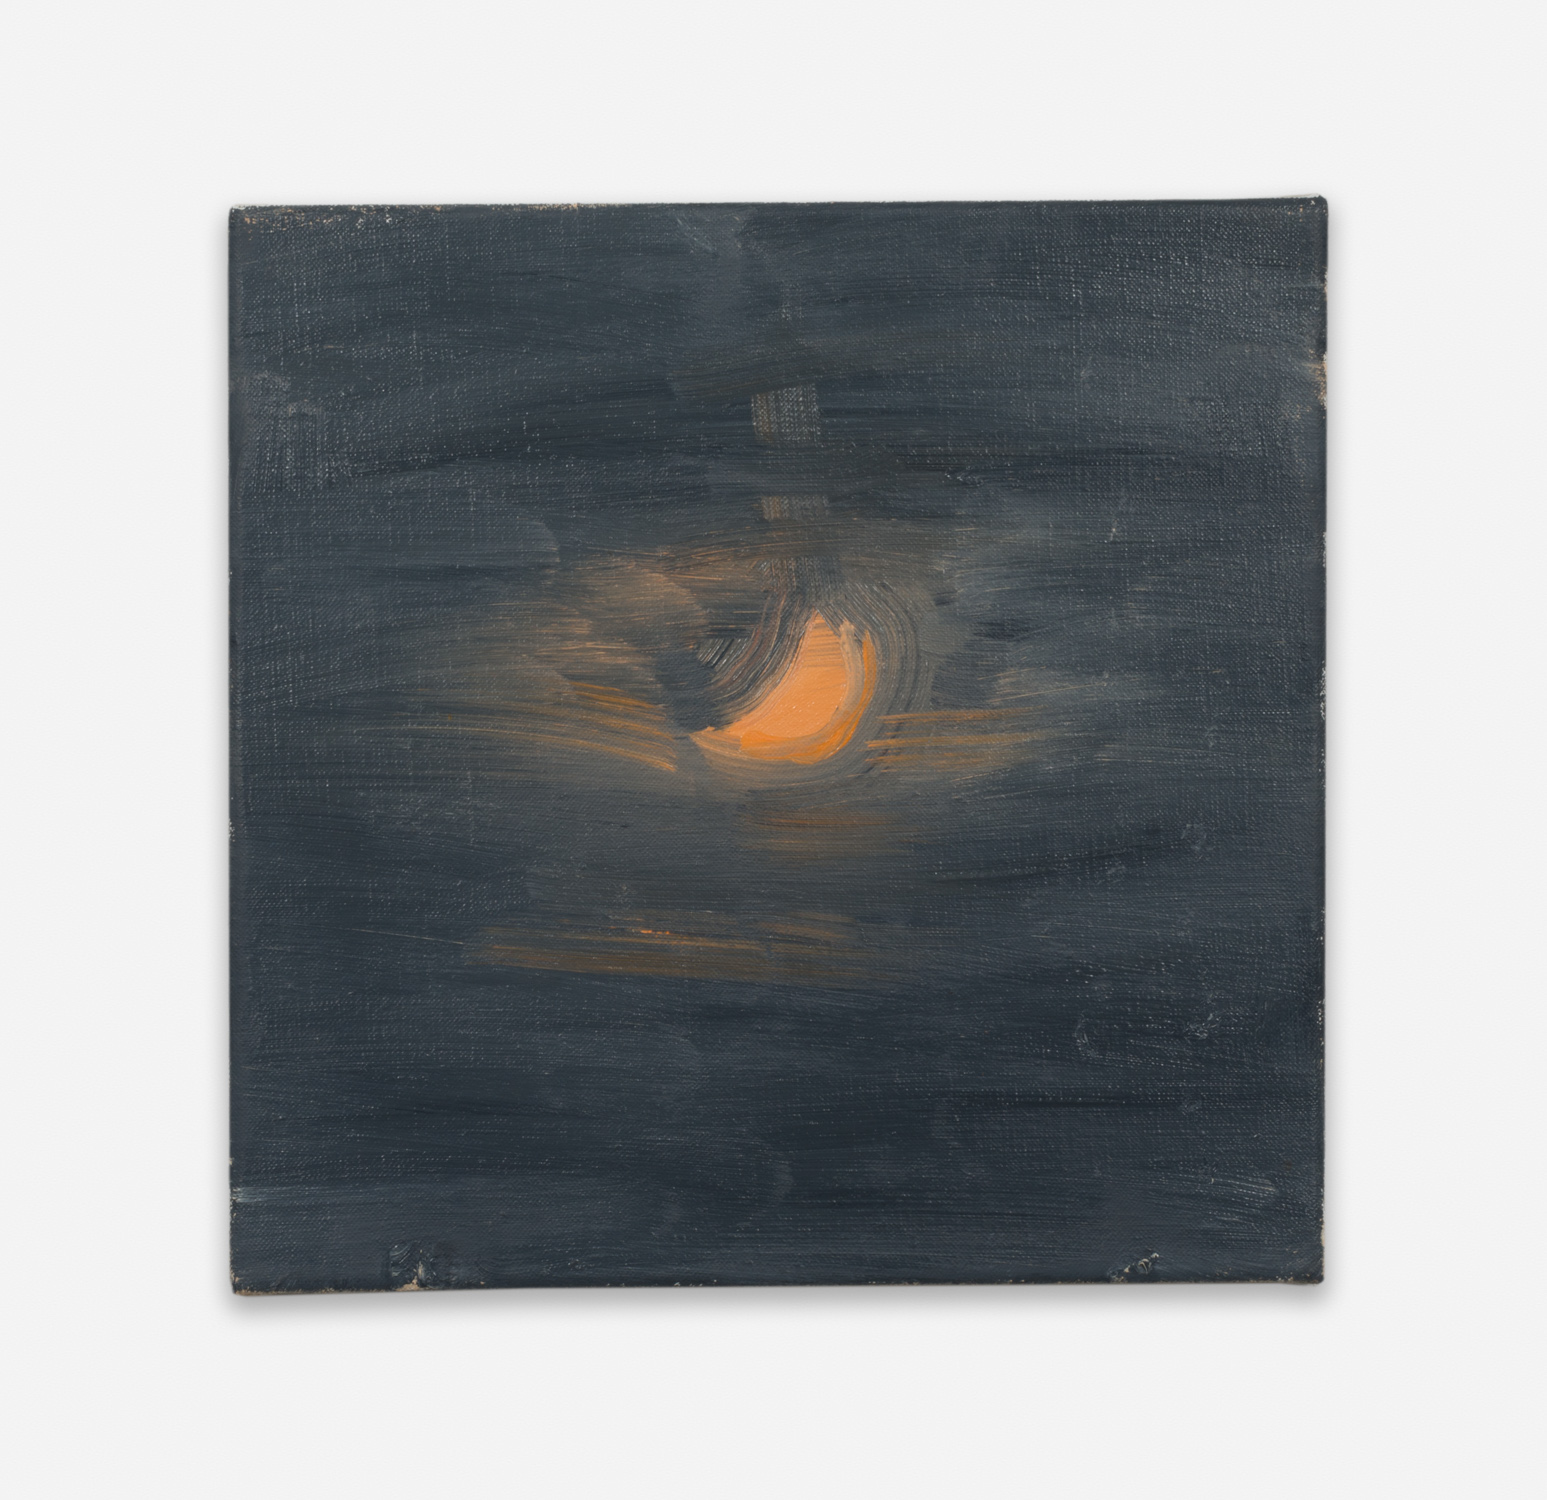 Ann Craven  Moon (Guilford, 8-26-12, 12:22AM), 2012  2012 Oil on linen 14h x 14w in AC135